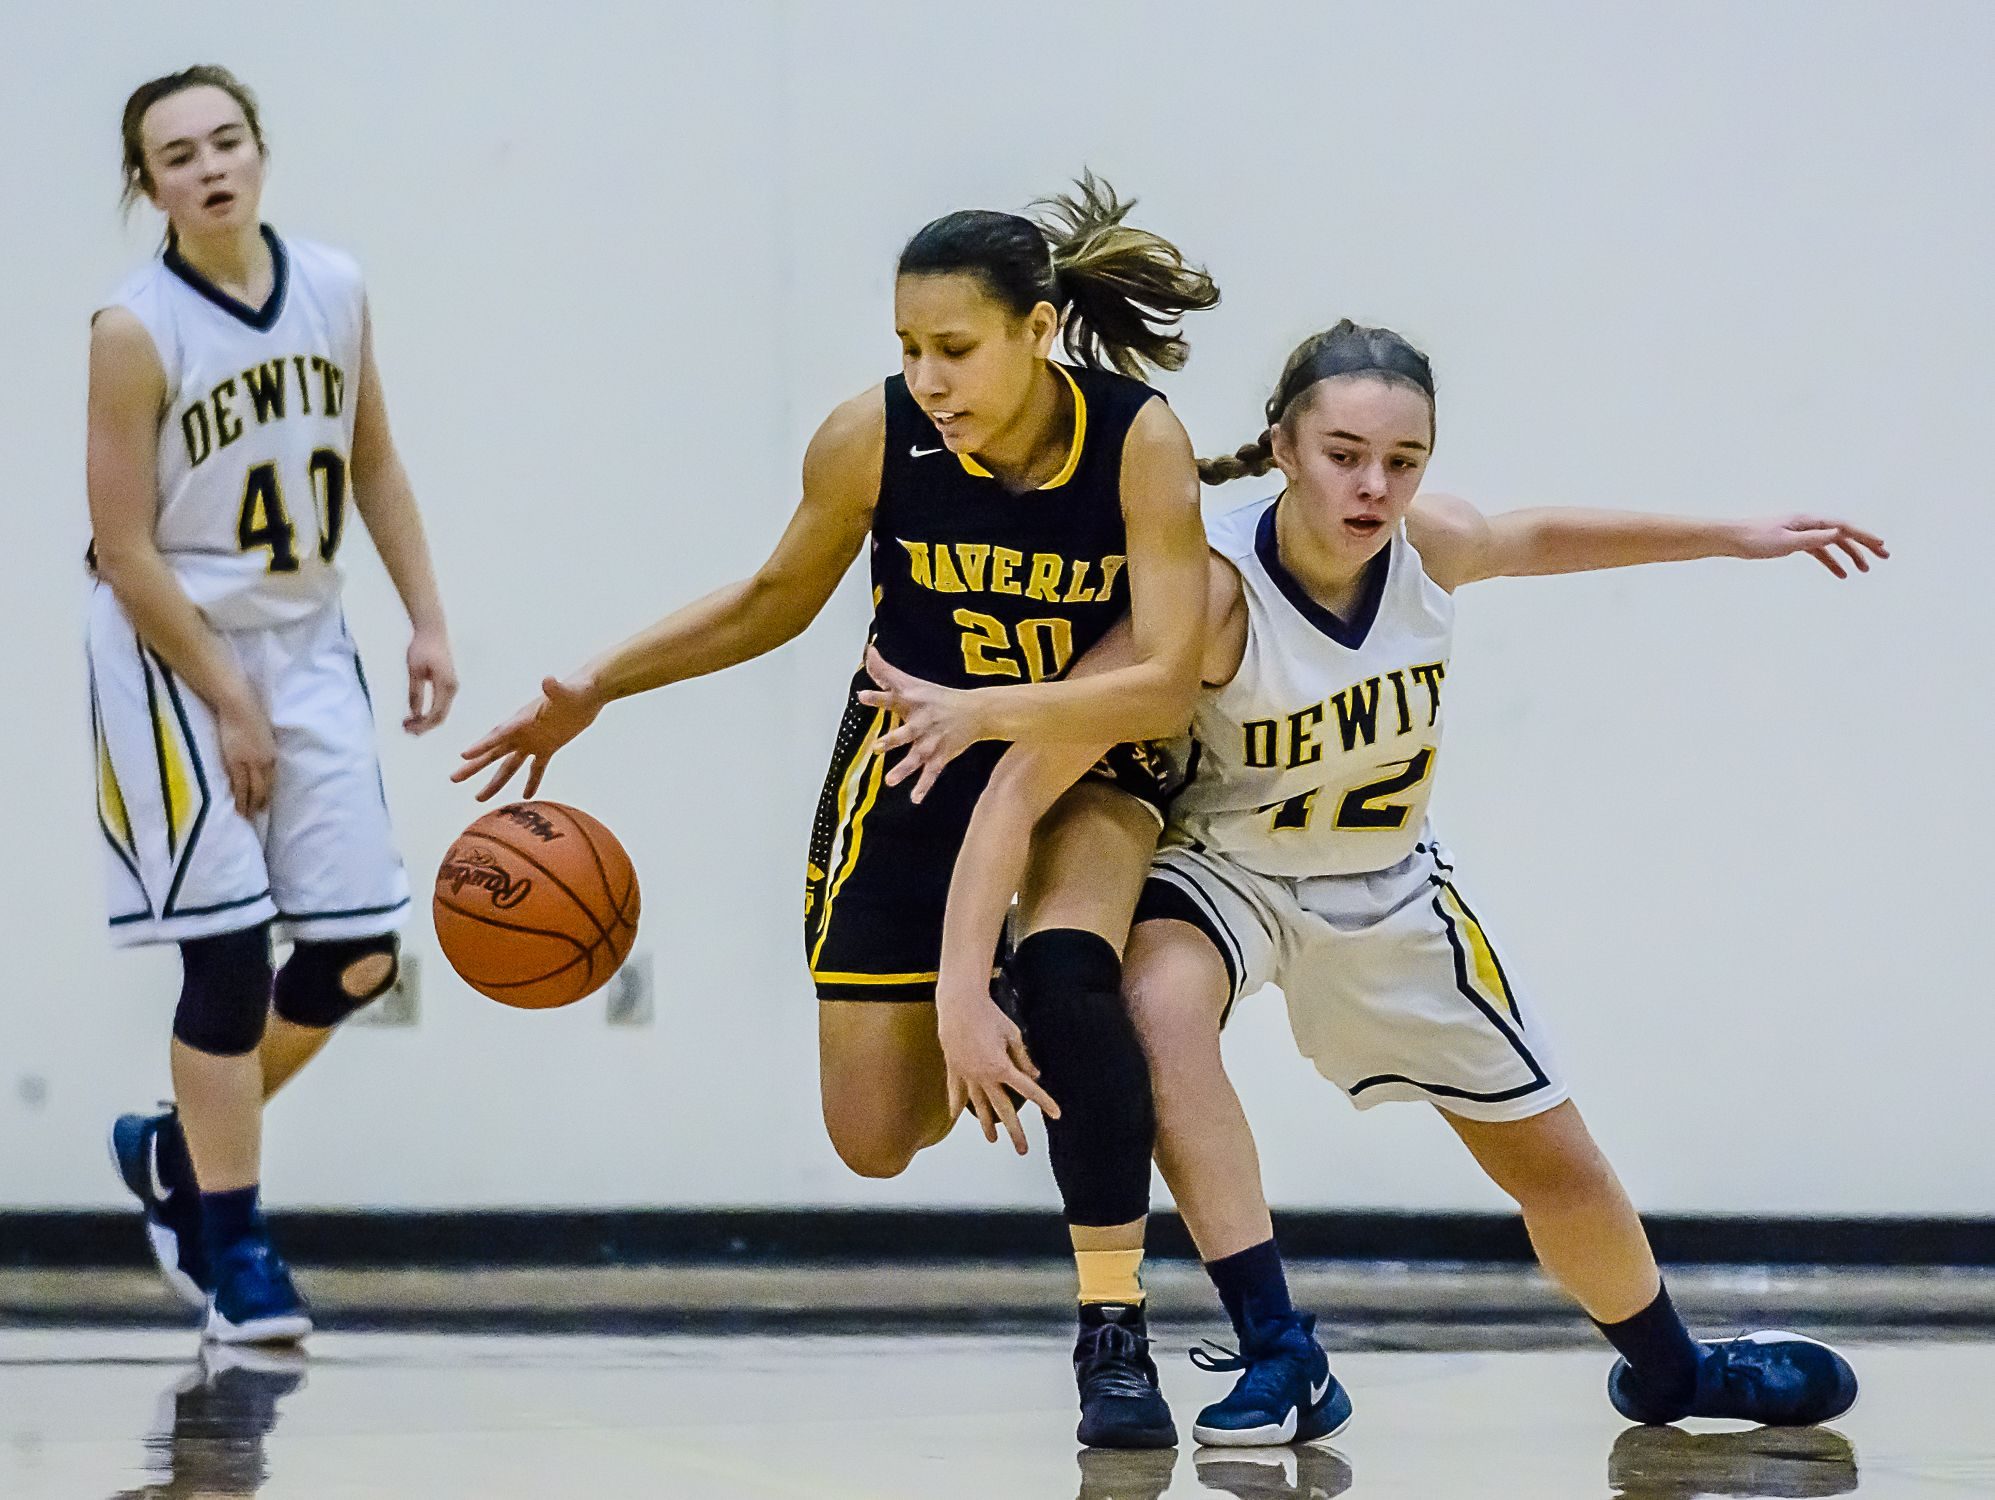 Evelyn Taylor ,center, of Waverly scoops up the ball for a turnover after Lily Stephan of DeWitt losses control in the 3rd quarter of their game Friday January 6, 2017 in DeWitt. KEVIN W. FOWLER PHOTO